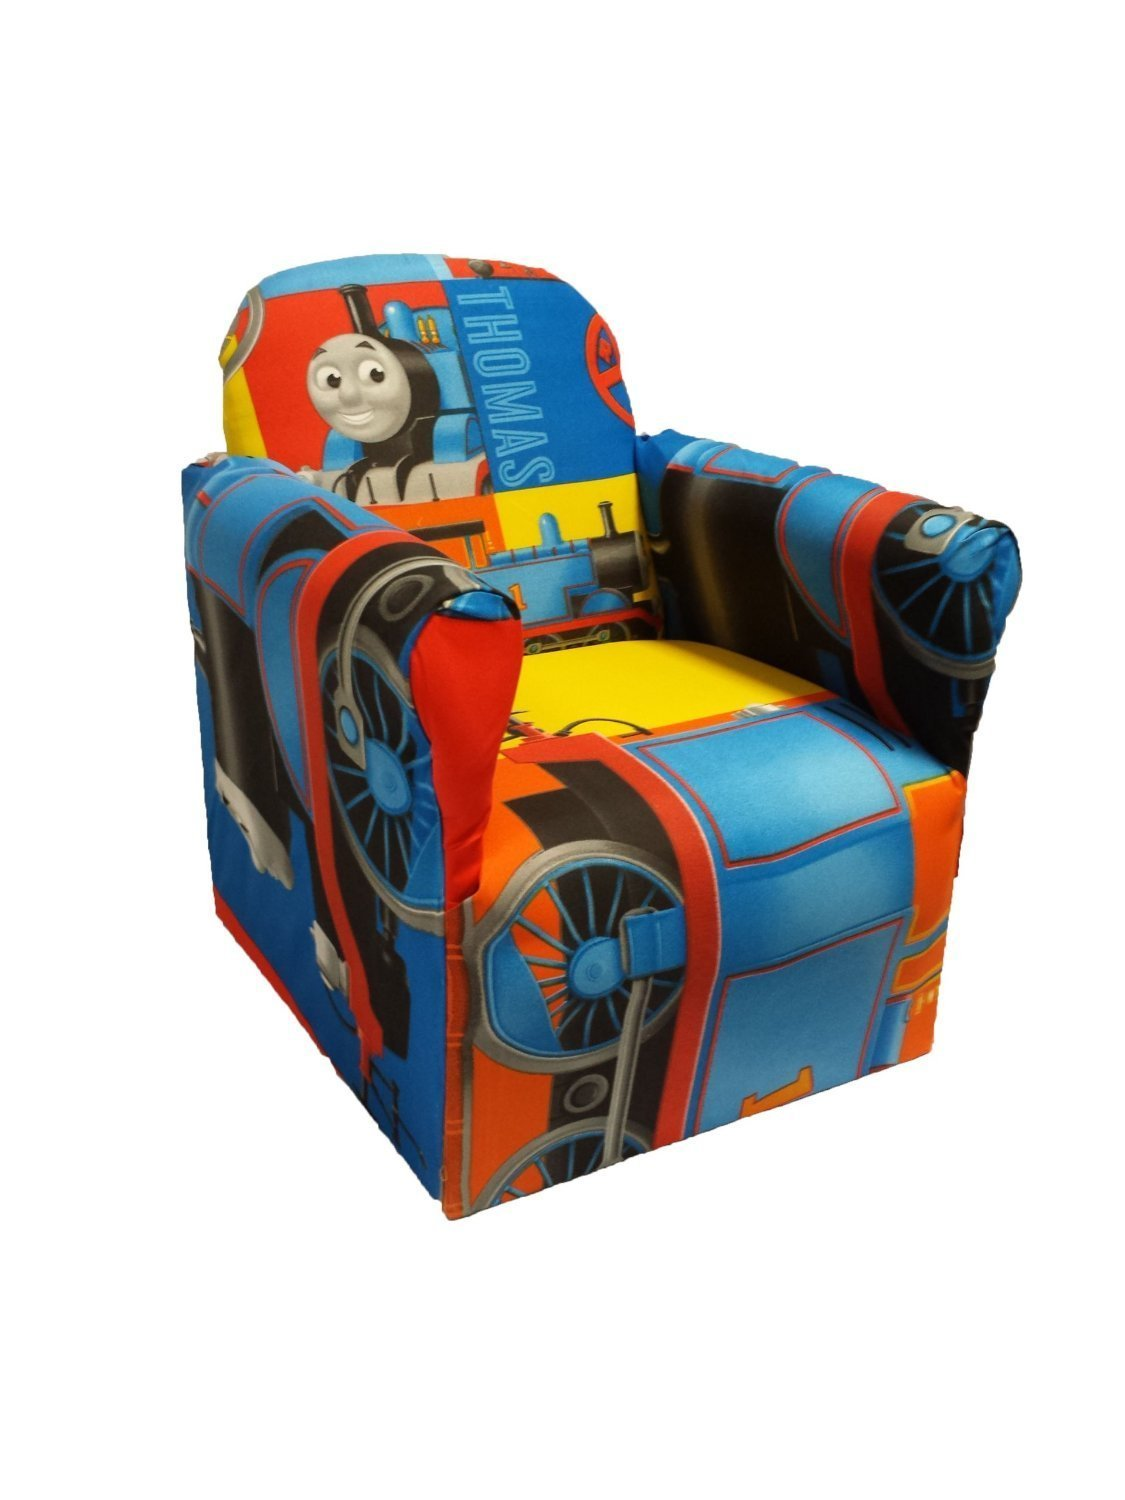 THOMAS THE TANK ENGINE CHILDRENS BRANDED CARTOON CHARACTER ARMCHAIR CHAIR  BEDROOM PLAYROOM KIDS SEAT: Amazon.co.uk: Kitchen U0026 Home